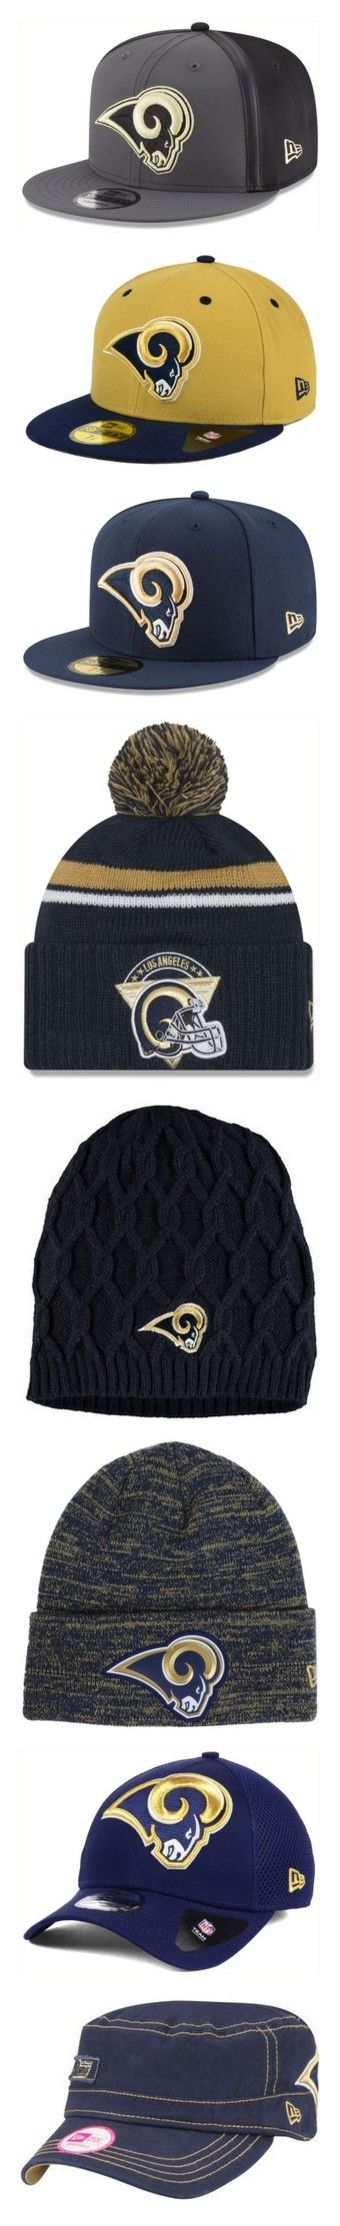 """""""Los Angeles """"RAMS""""!"""" by beautifuldistroyer on Polyvore featuring men's fashion, men's accessories, men's hats, mens snapback hats, mens camo hats, mens caps and hats, mens fitted hats, mens knit hats, tops and navy"""